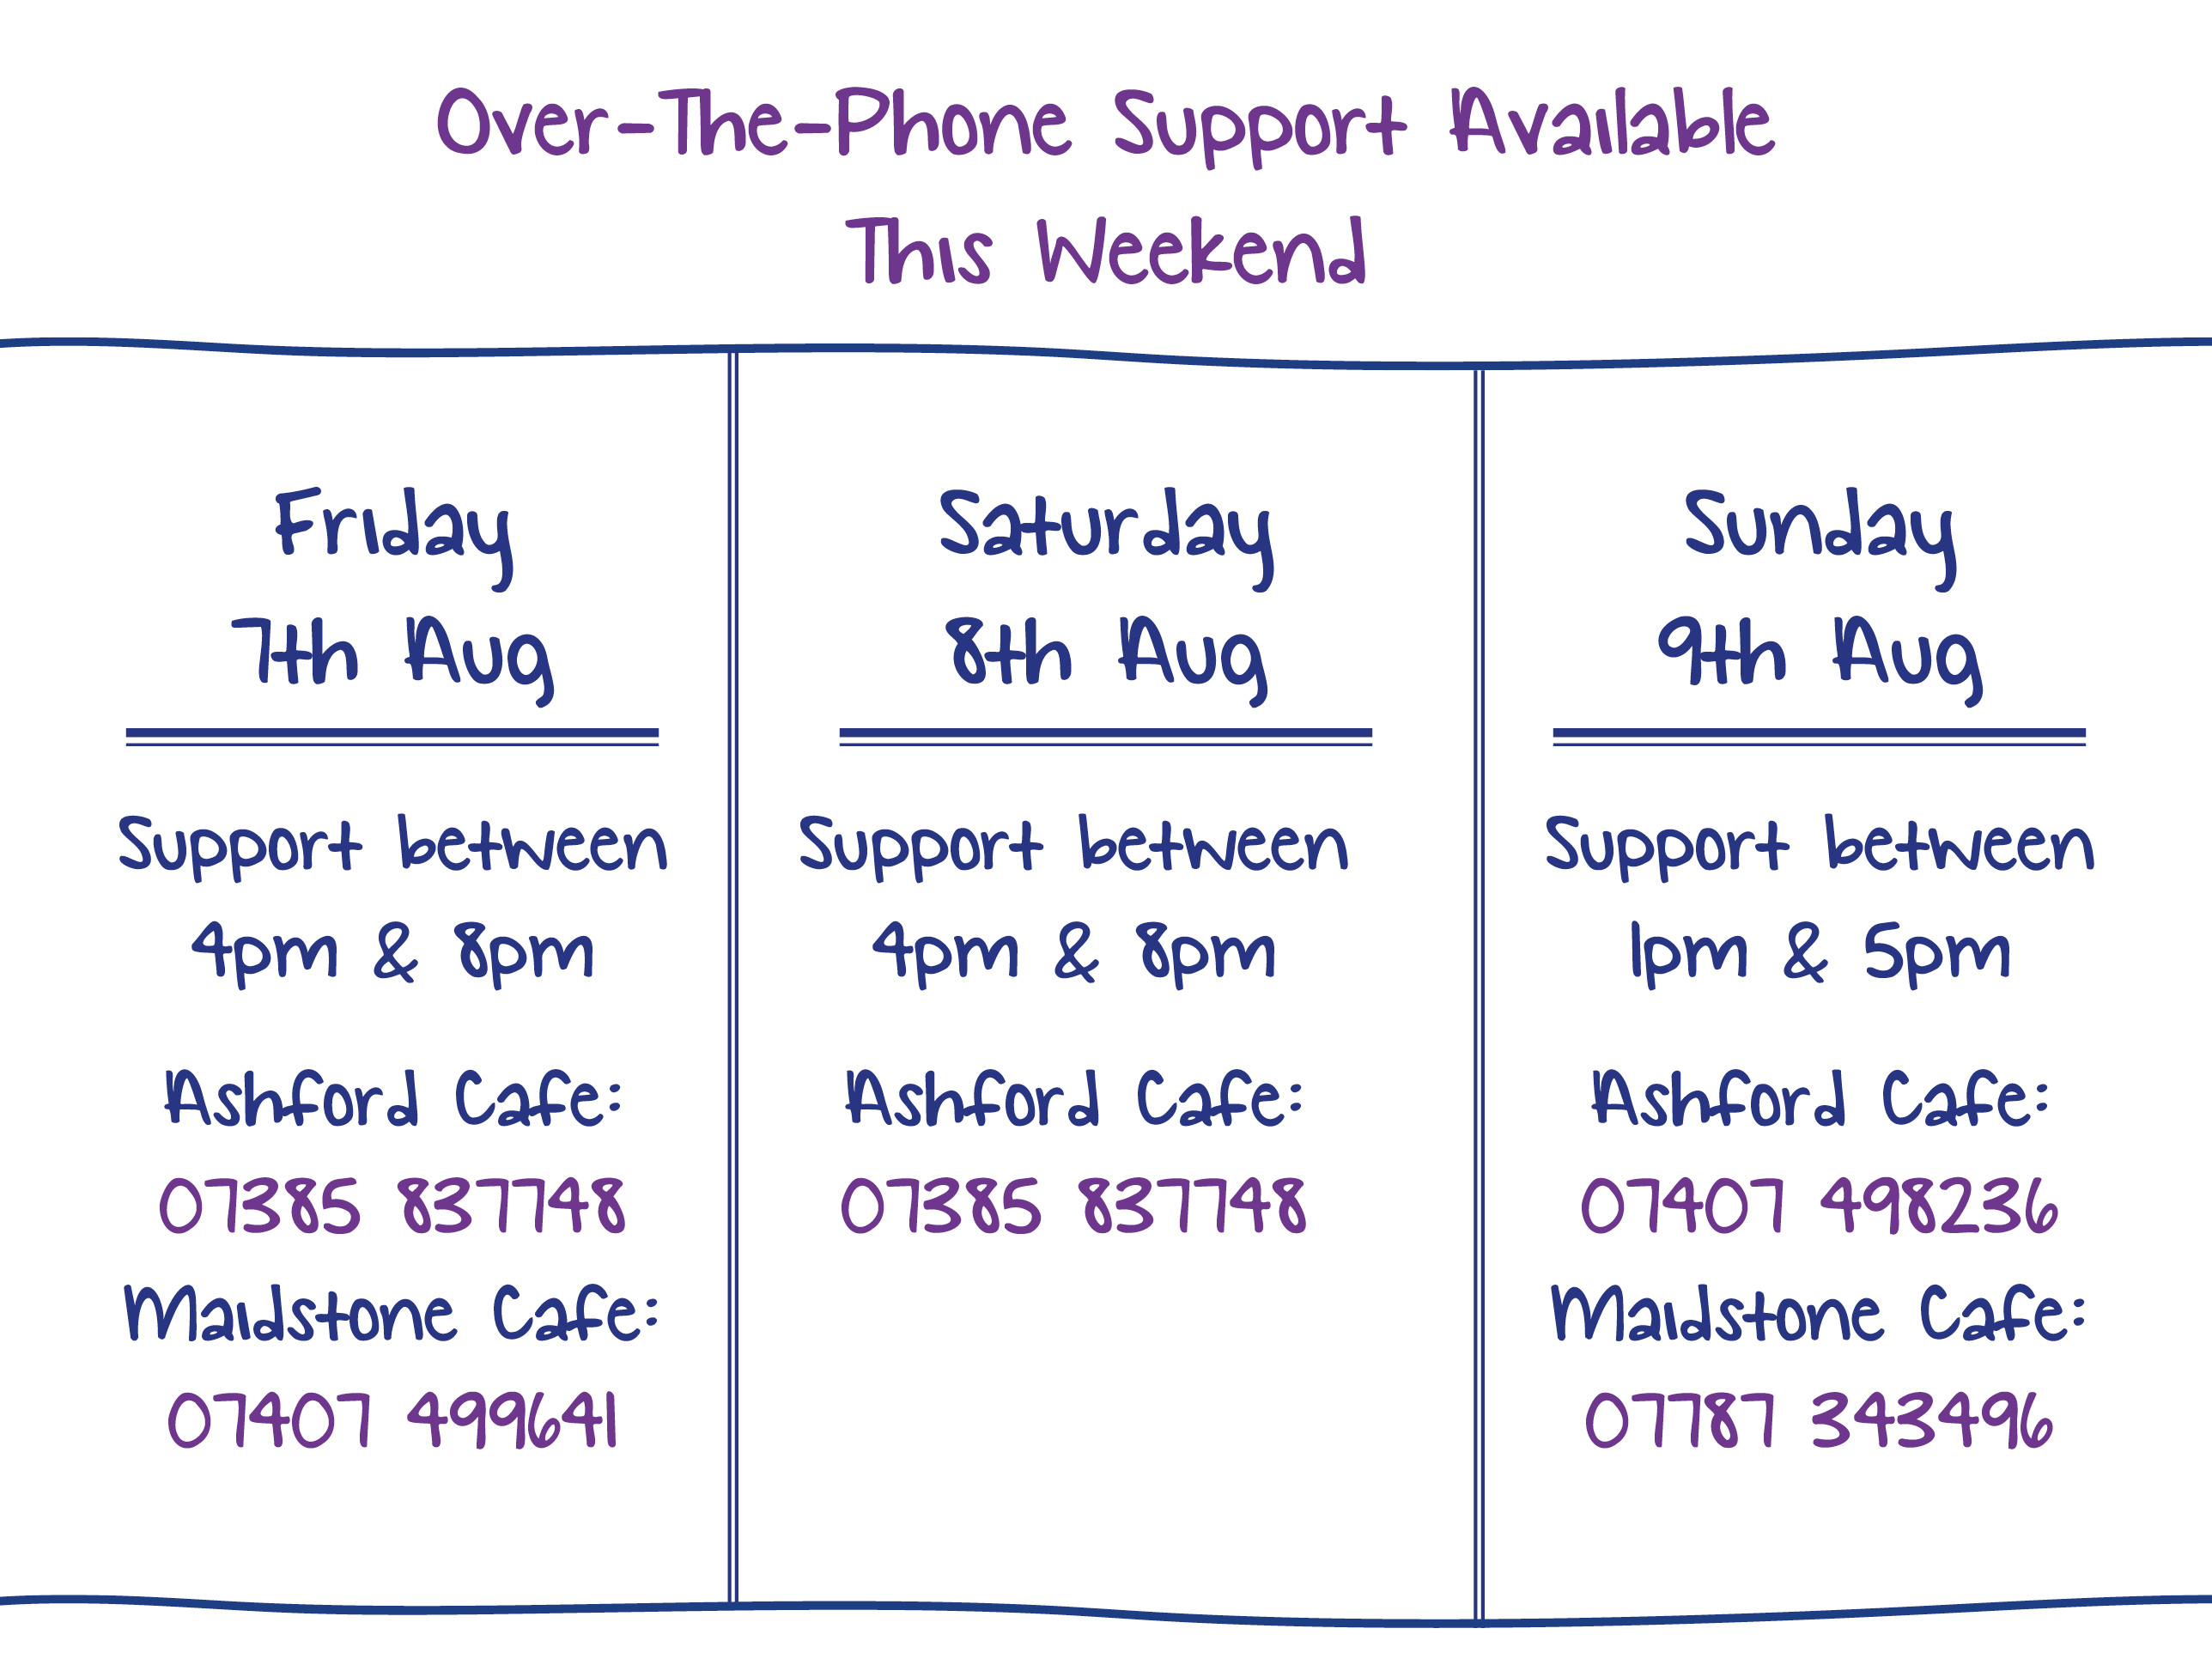 Over-The-Phone Support Available This Weekend. Friday 7th Aug. upport between 4pm & 8pm Ashford Cafe: 07385 837748 Maidstone Cafe: 07407 499641. Saturday 8th Aug. Support between 4pm & 8pm Ashford Cafe: 07385 837748. Sunday 9th Aug. Support between 1pm & 5pm Ashford Cafe: 07407 498236 Maidstone Cafe: 07787 343496.